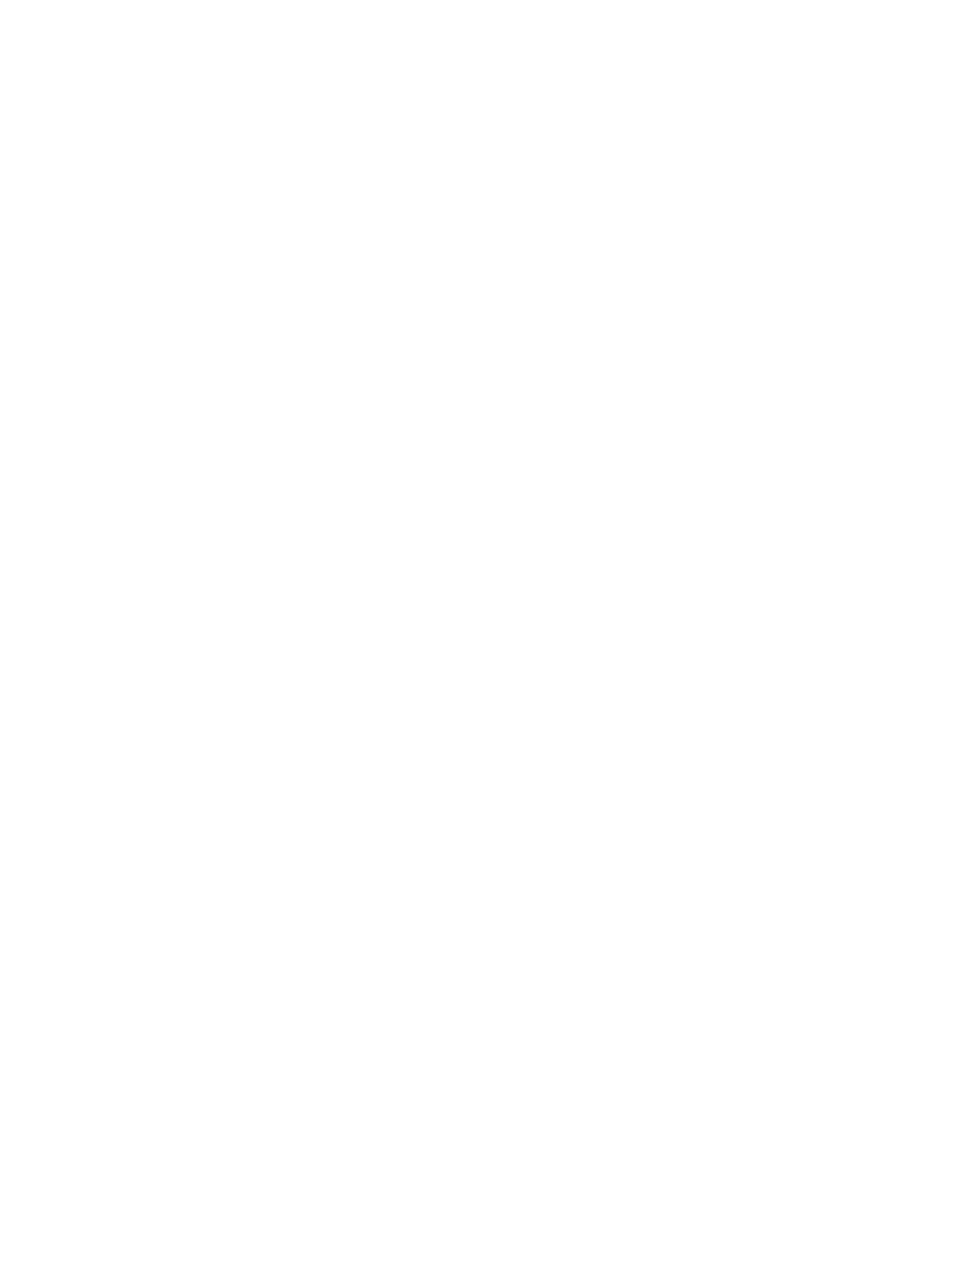 Bird outline